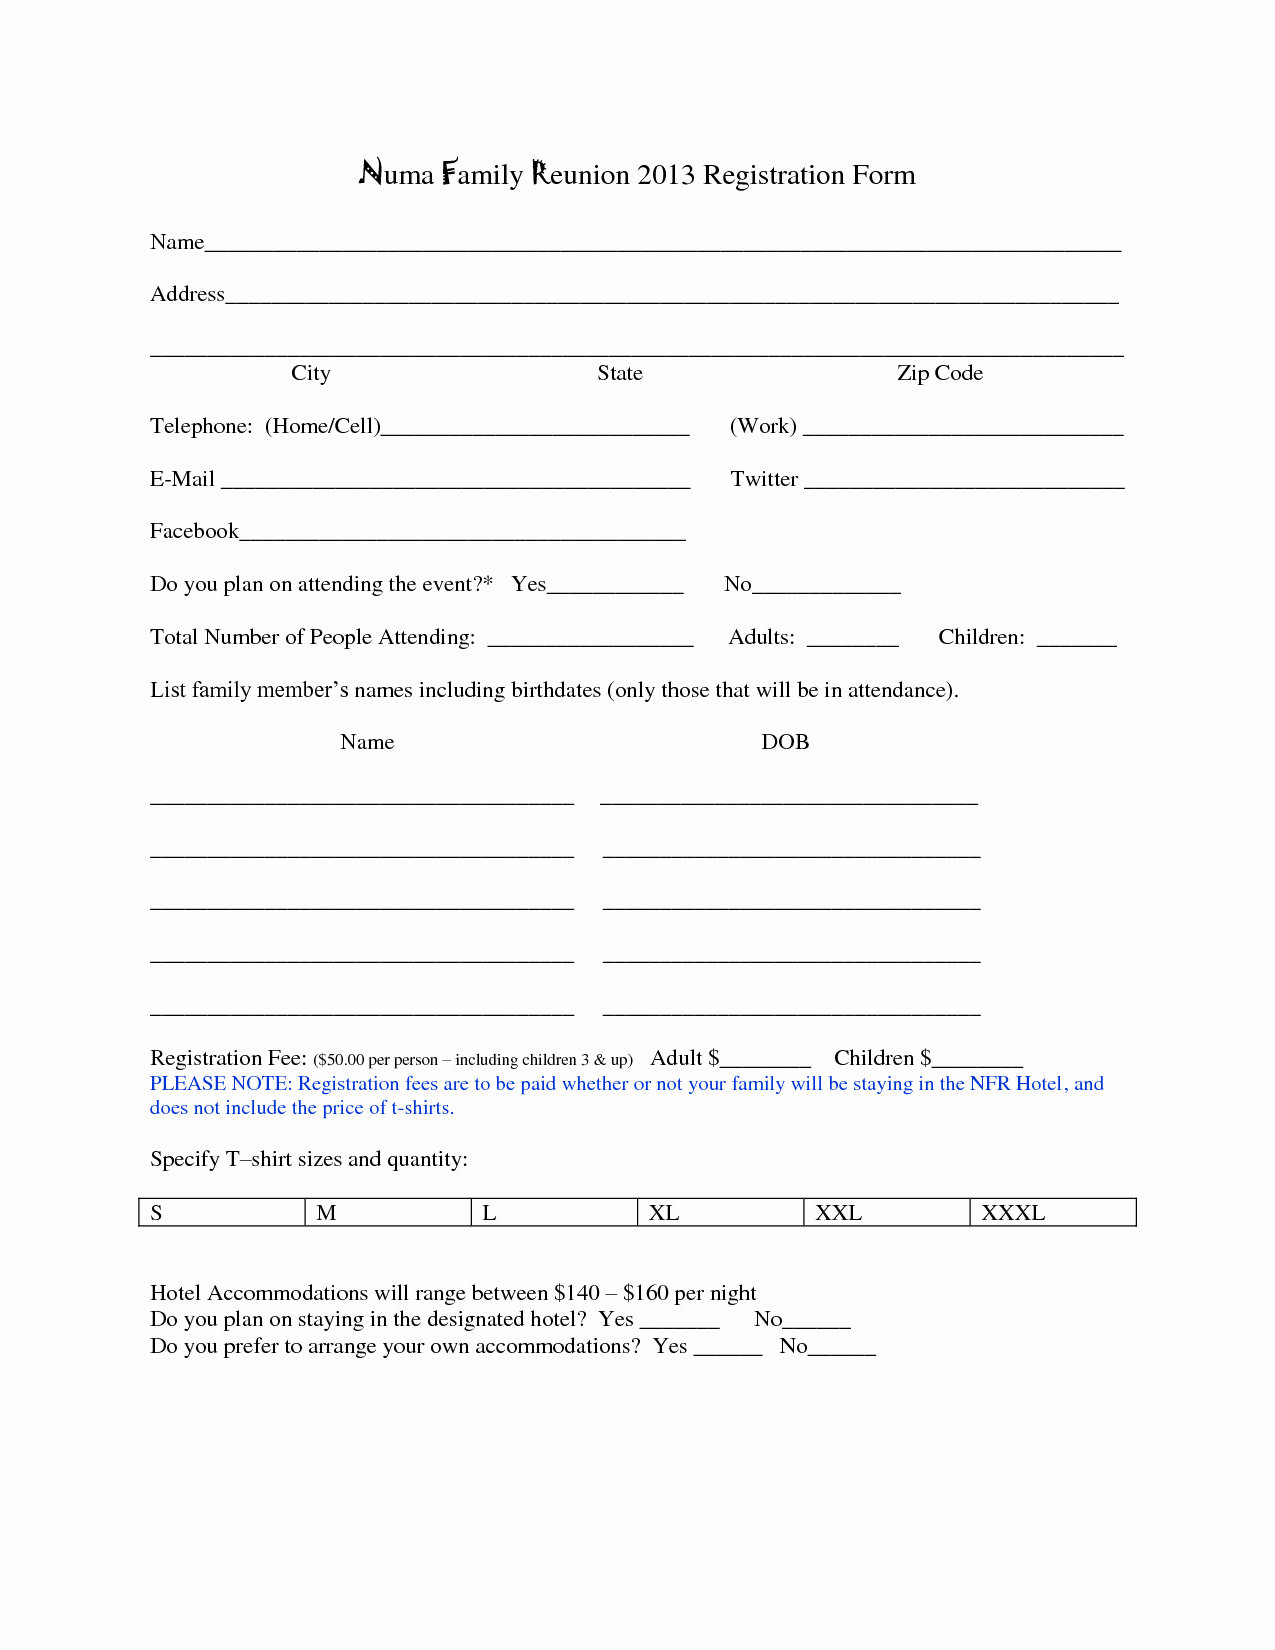 Template for Registration form Best Of Family Reunion Registration form Template